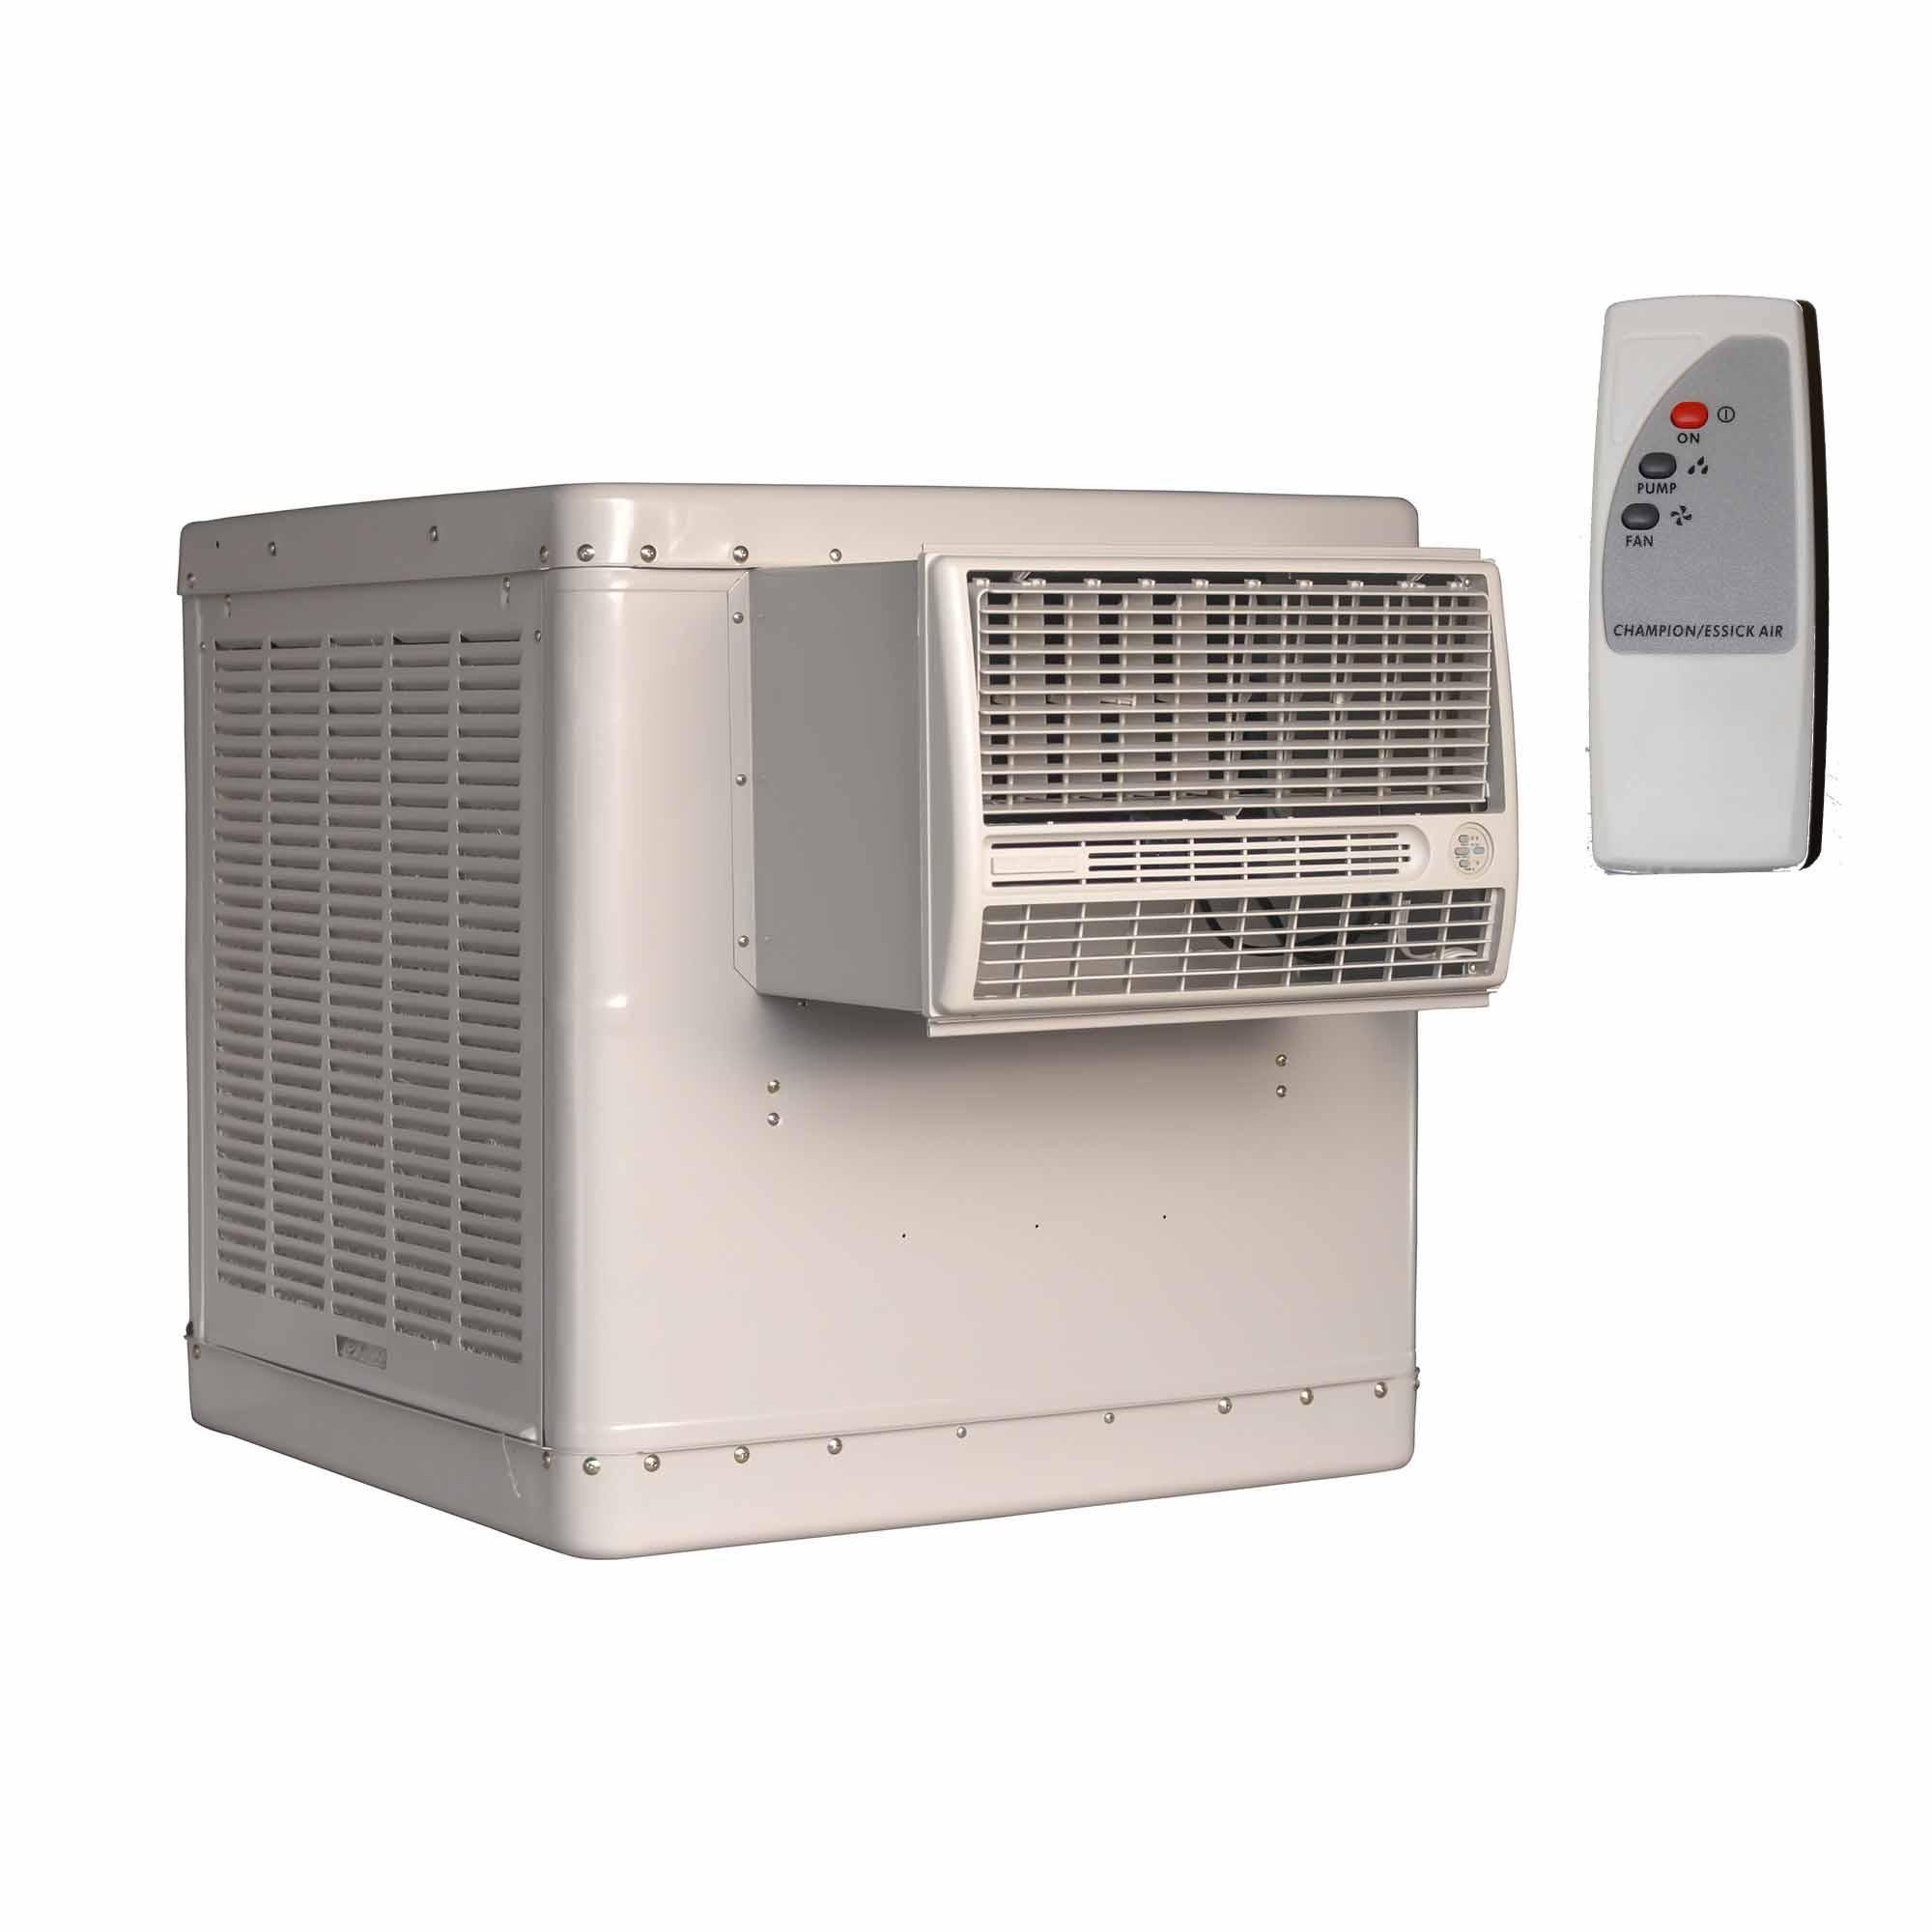 Essick Usa70 Air Conditioners Owners Manual 2019 Ebook